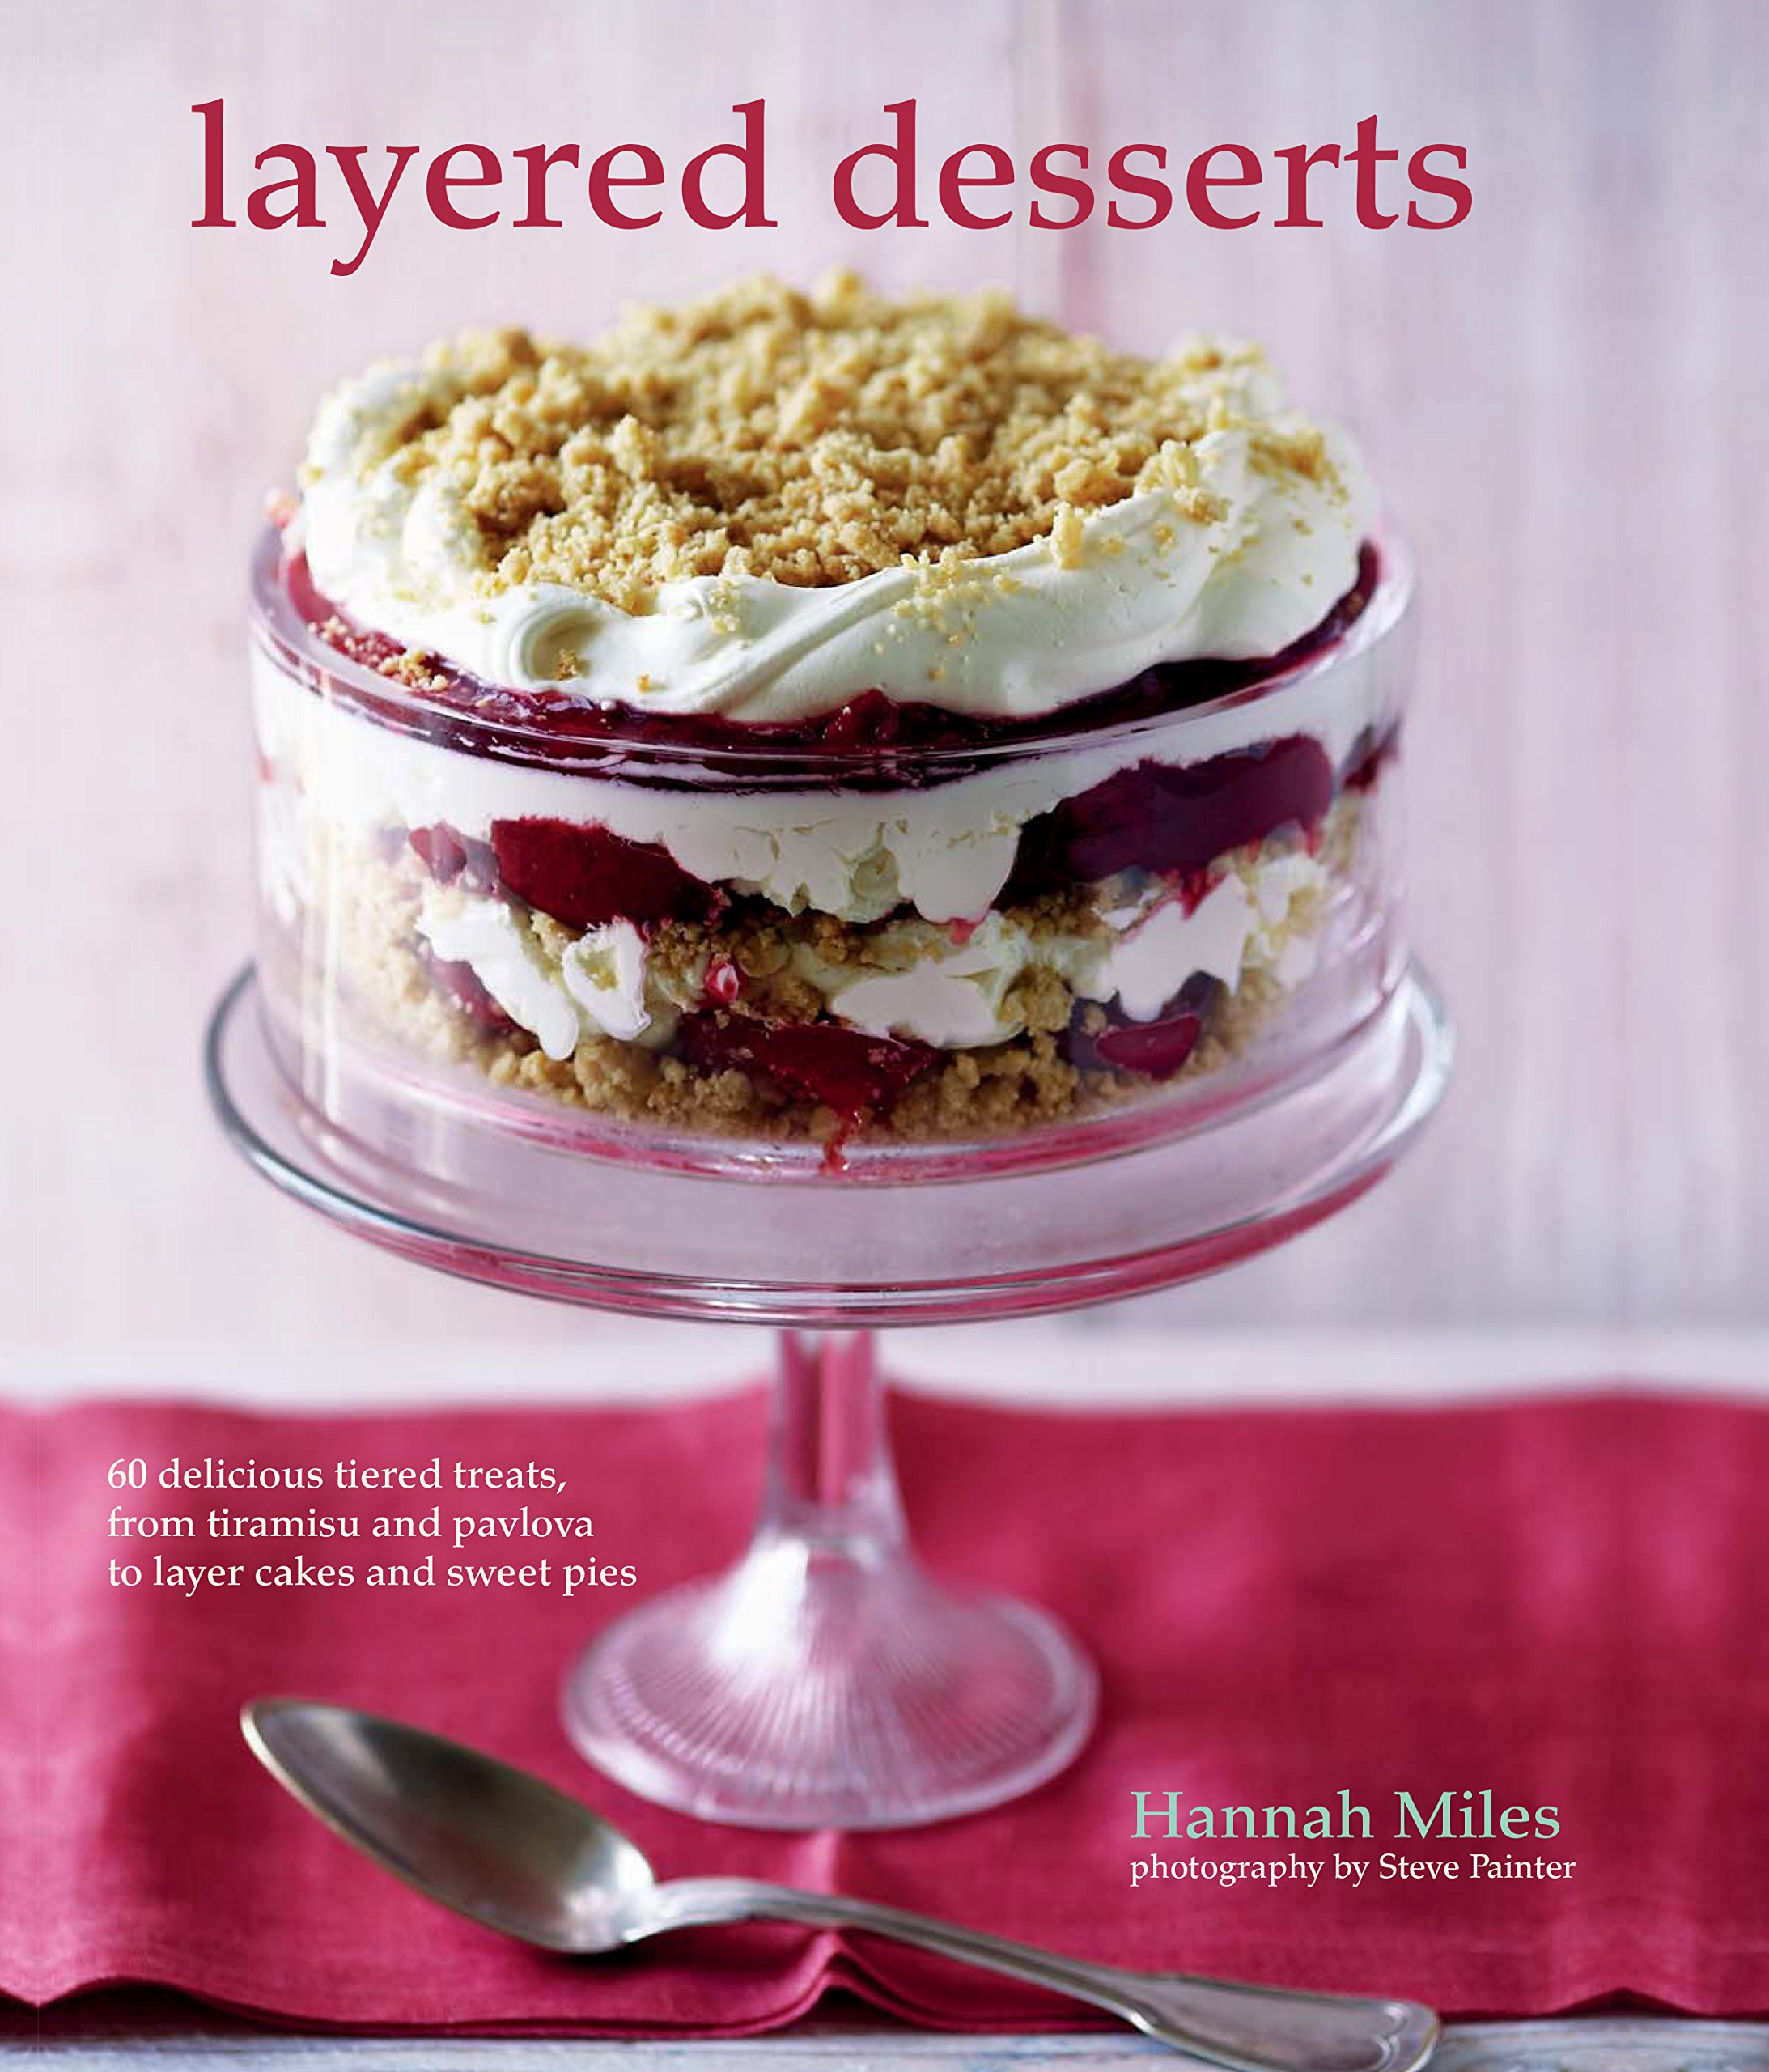 d66bce05b59 Layered Desserts  More than 65 tiered treats